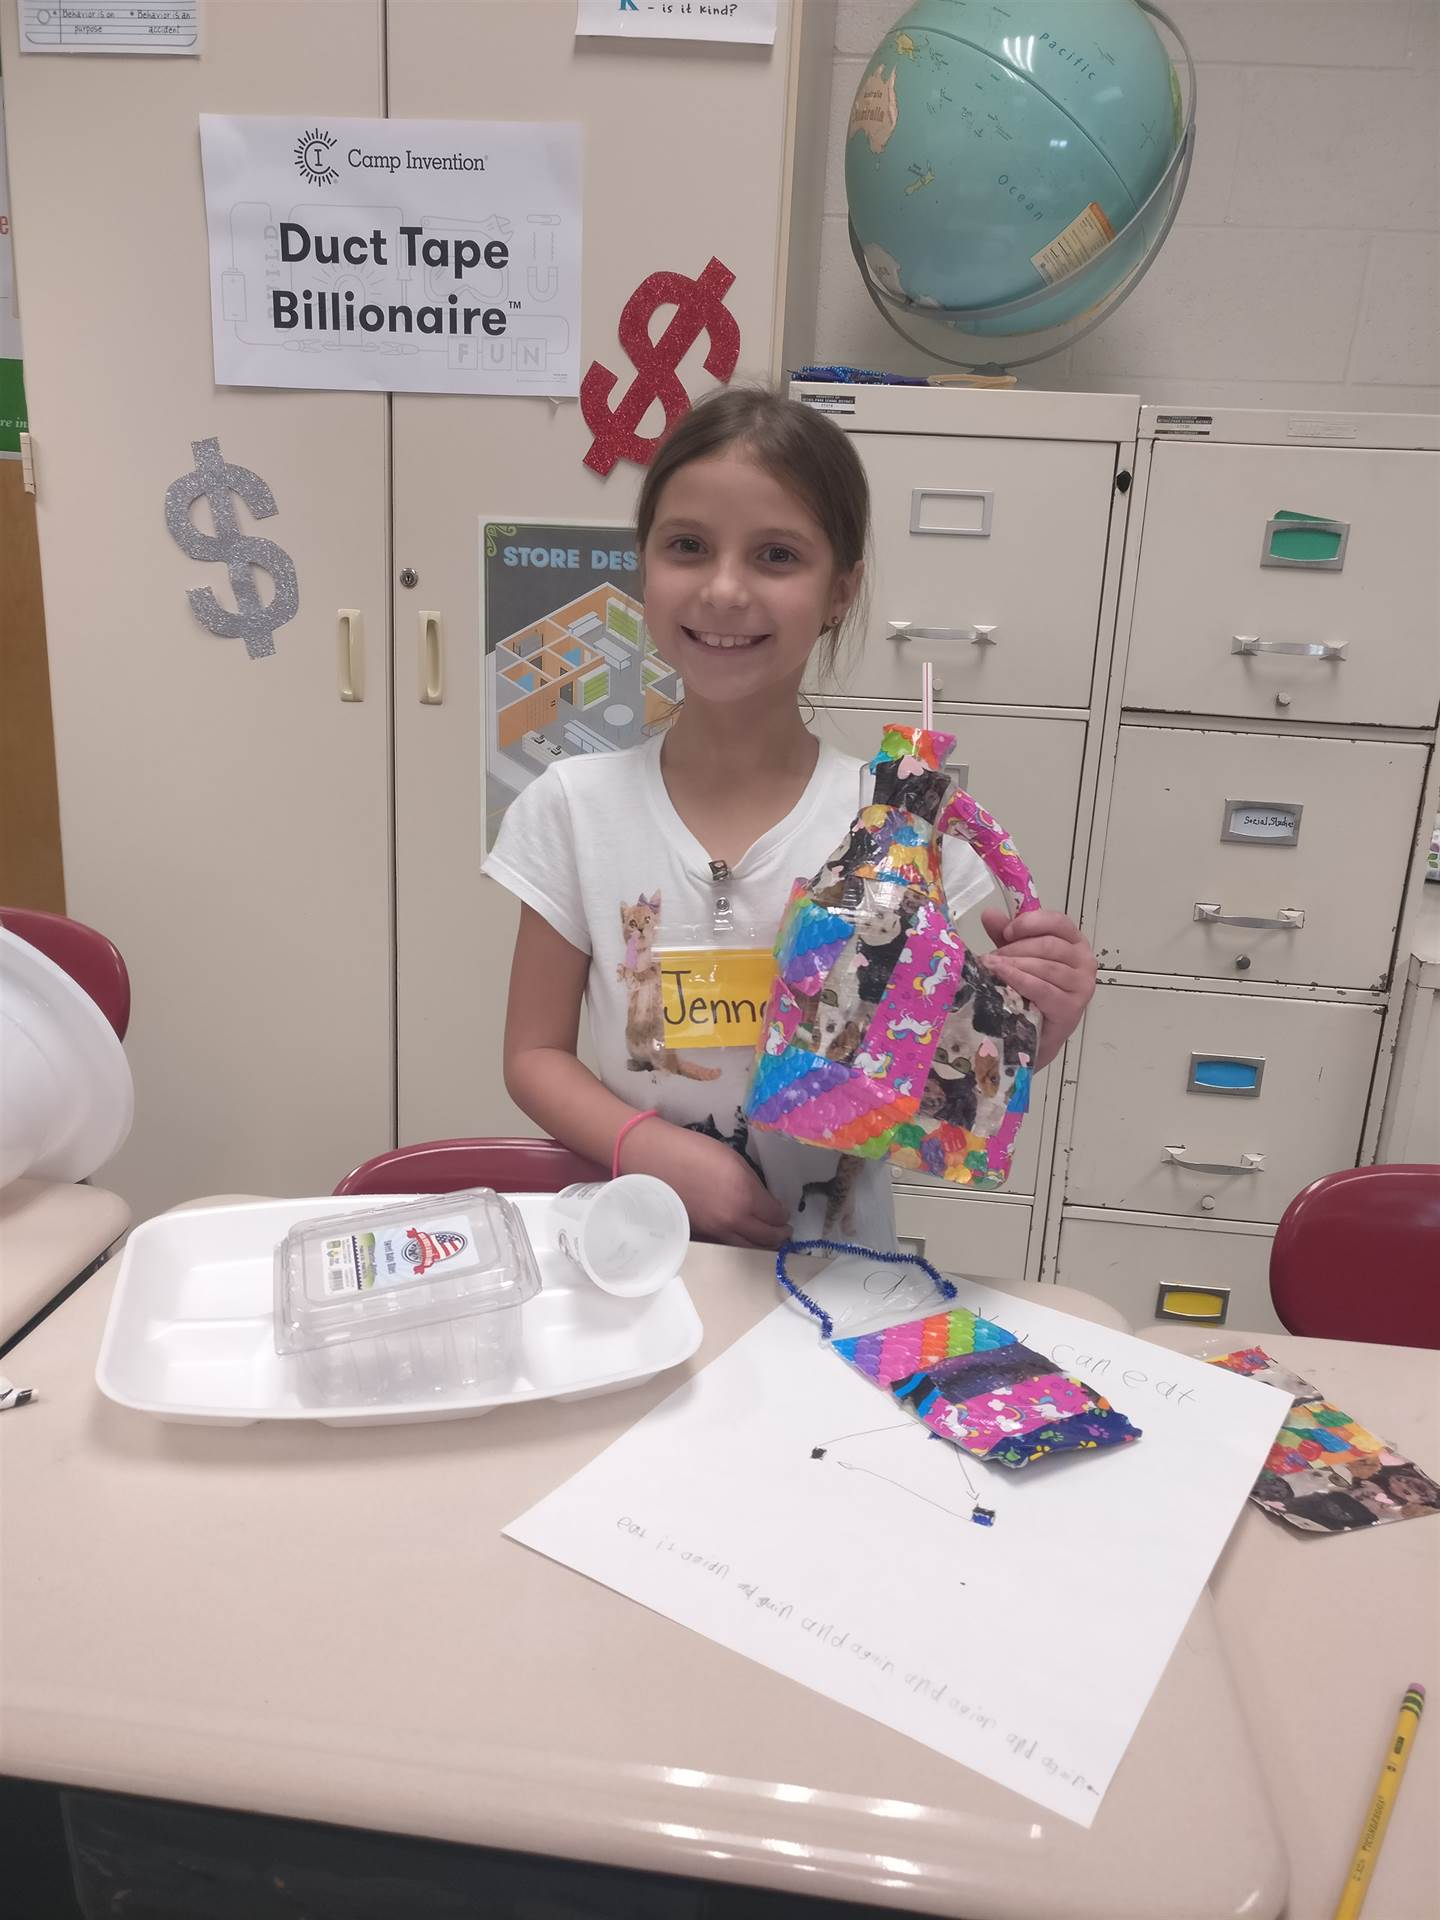 Students enjoyed creating products for the Duct Tape Billionaire module.